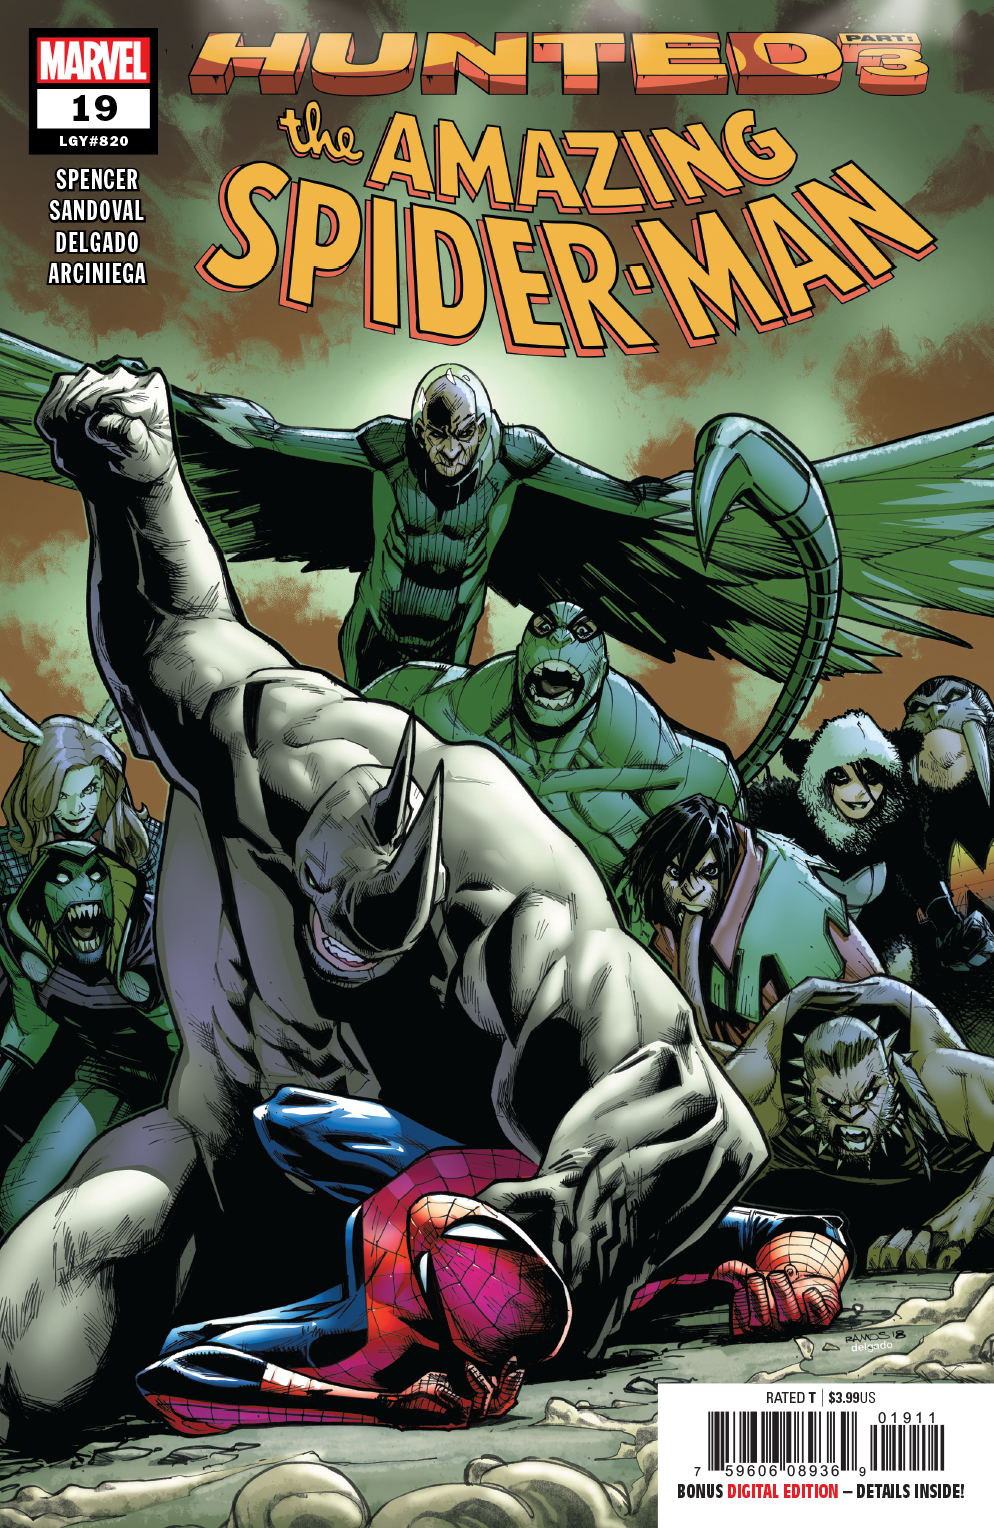 AMAZING SPIDER-MAN #19